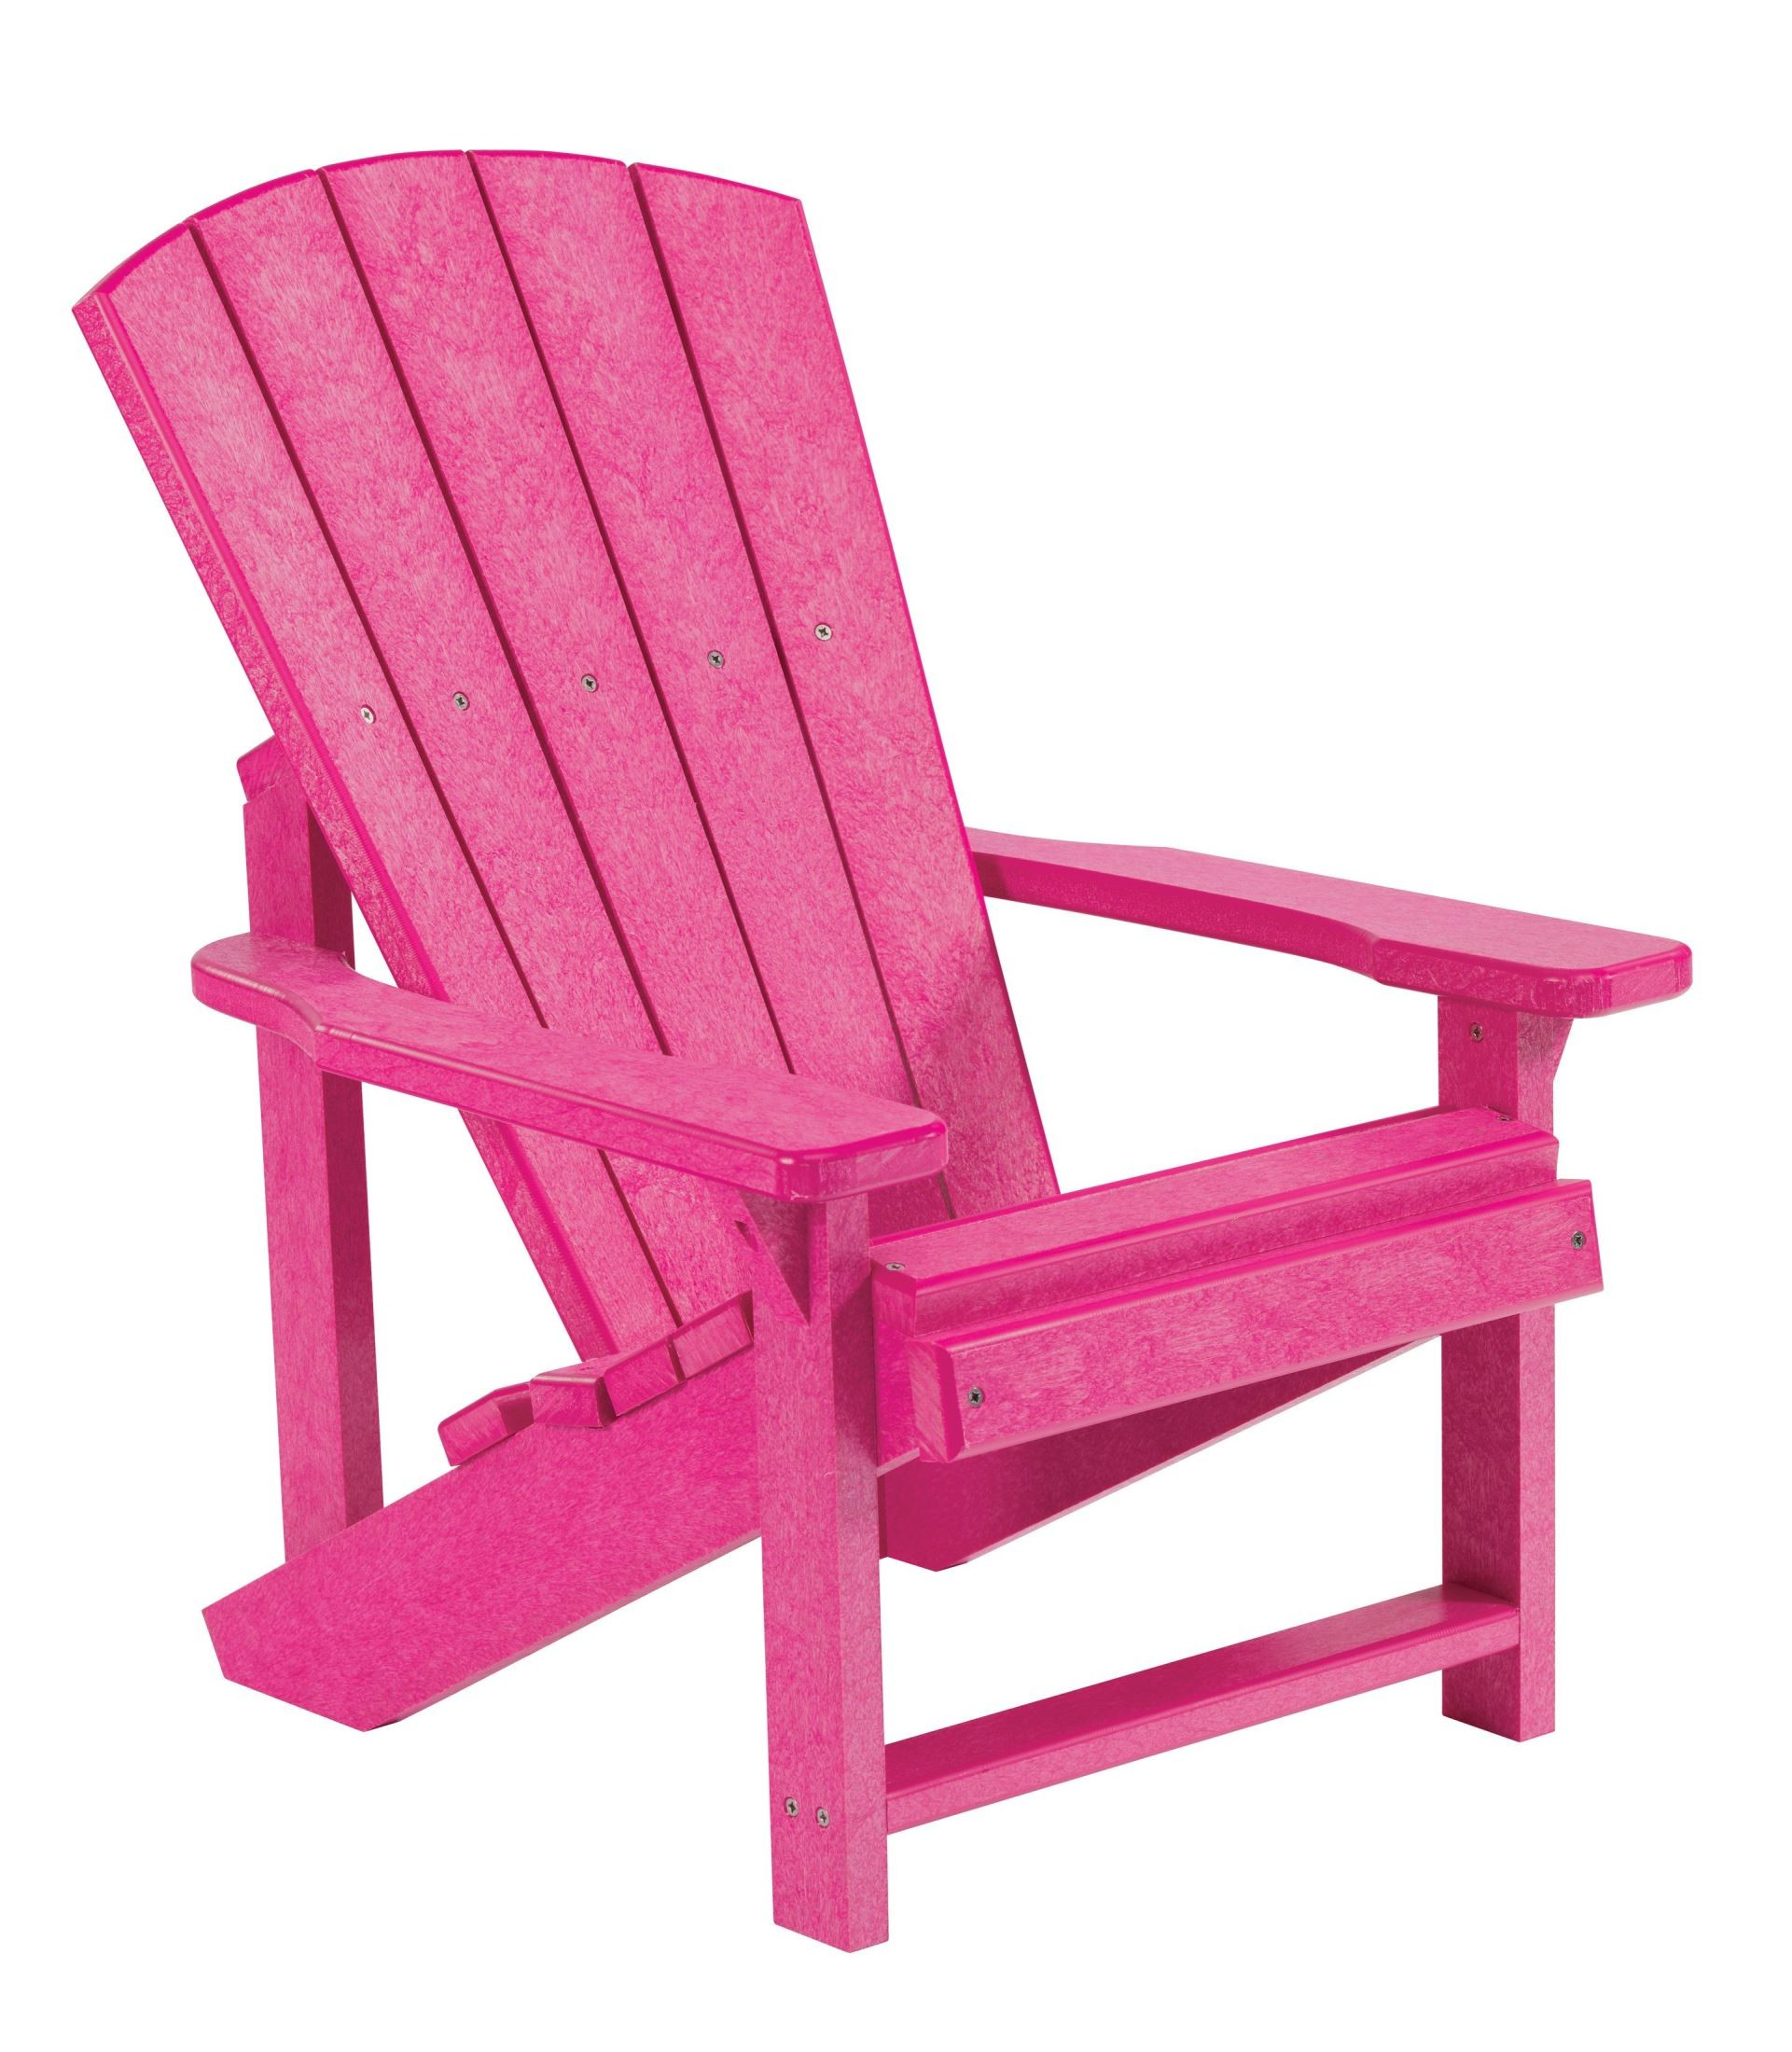 Generations Fuschia Kids Adirondack Chair From Cr Plastic